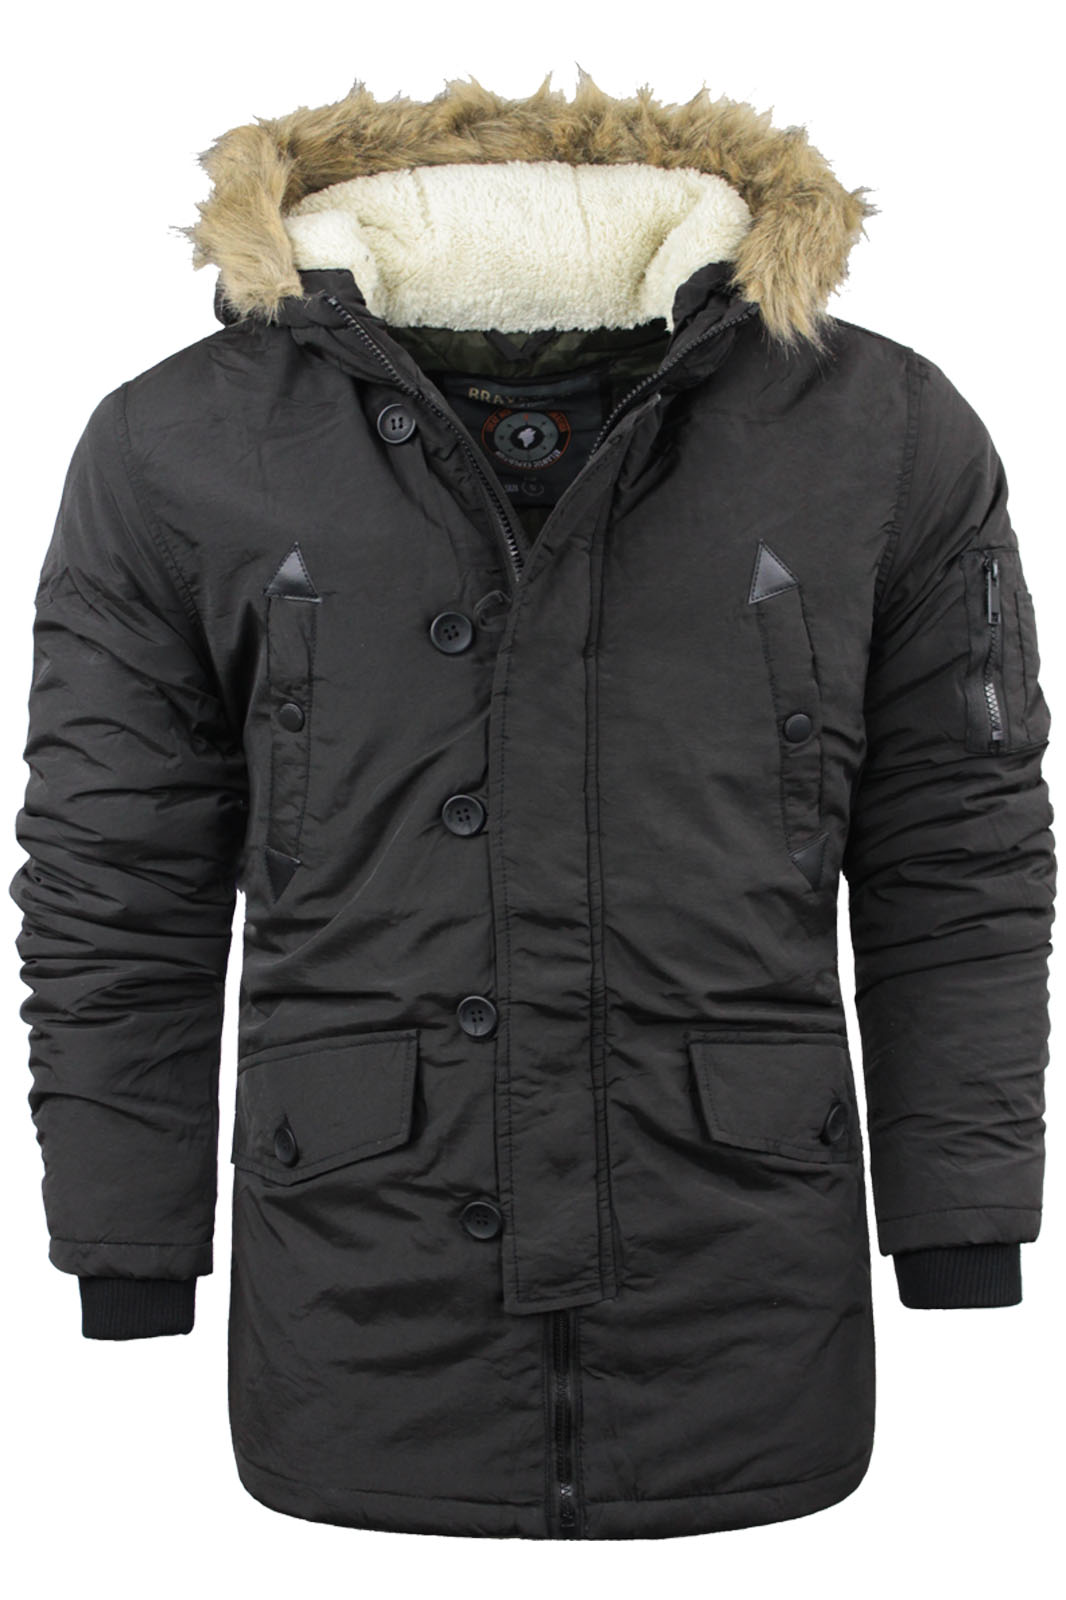 Mens Winter Coat With Fur Hood